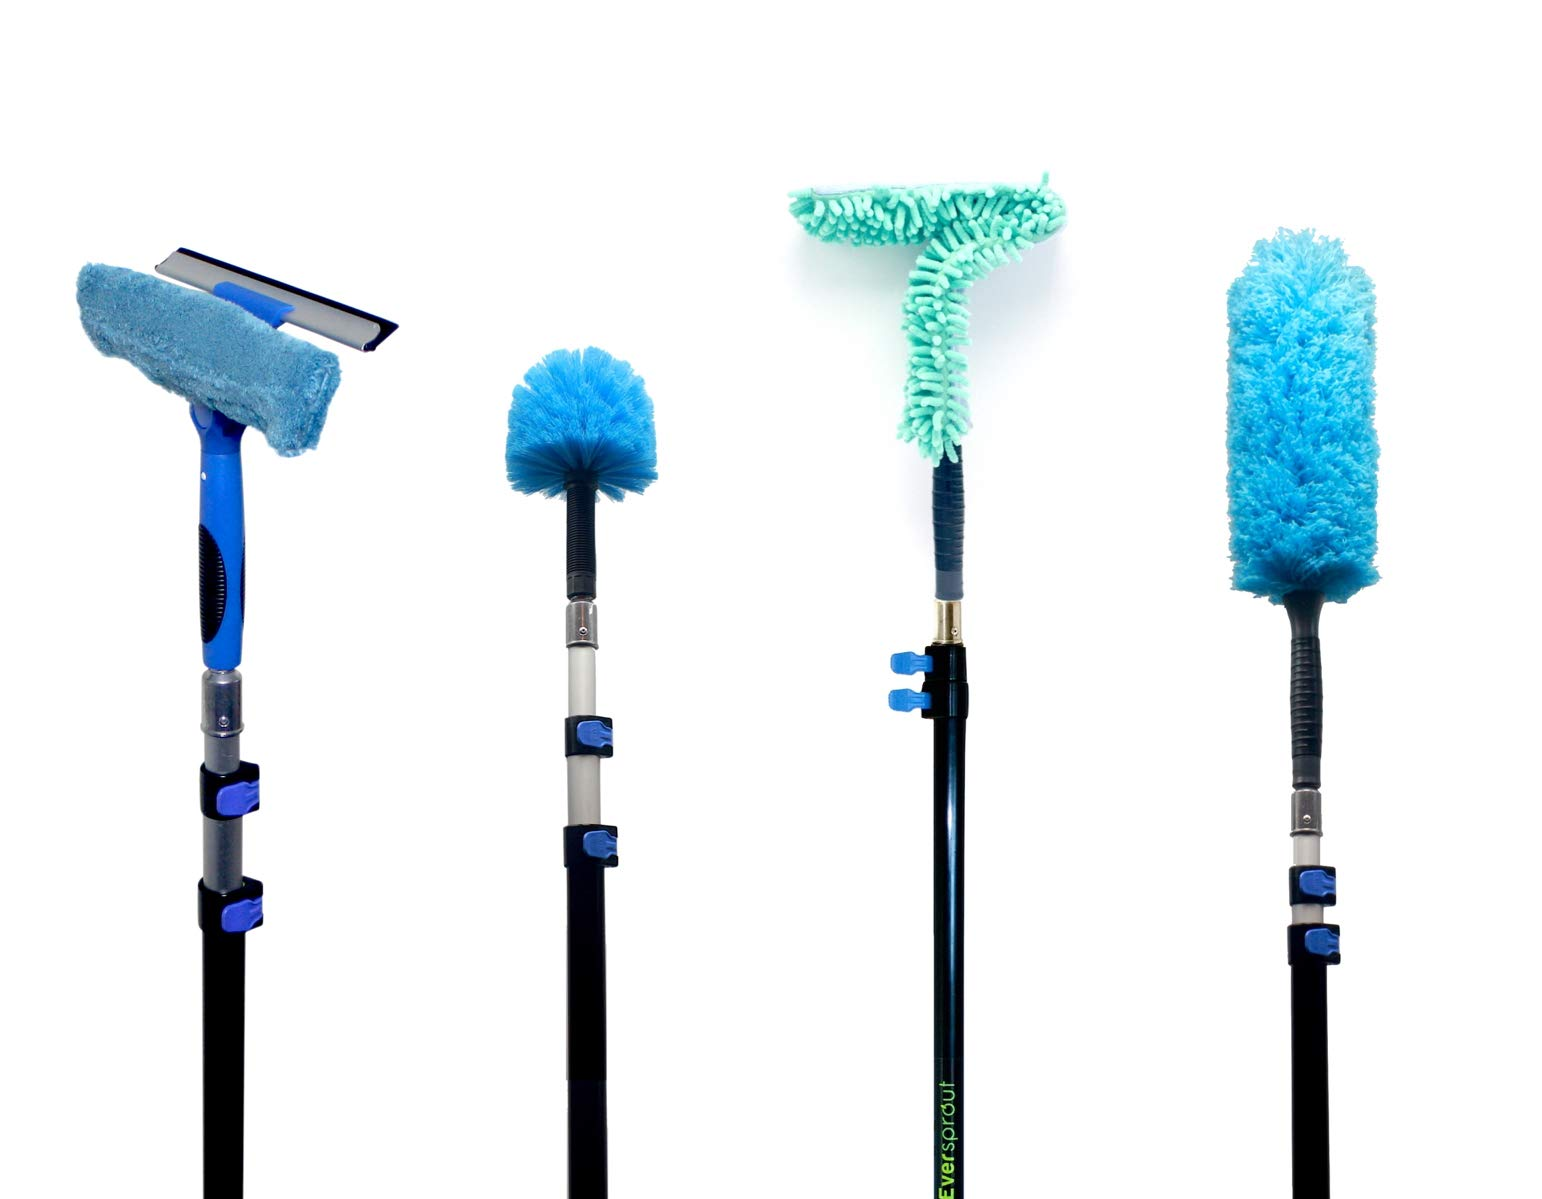 EVERSPROUT 4-Pack Duster Squeegee Kit with Extension-Pole (20+ Foot Reach) | Swivel Squeegee, Hand-Packaged Cobweb Duster, Microfiber Feather Duster, Ceiling Fan Duster, 12 Foot Telescopic Pole by EVERSPROUT